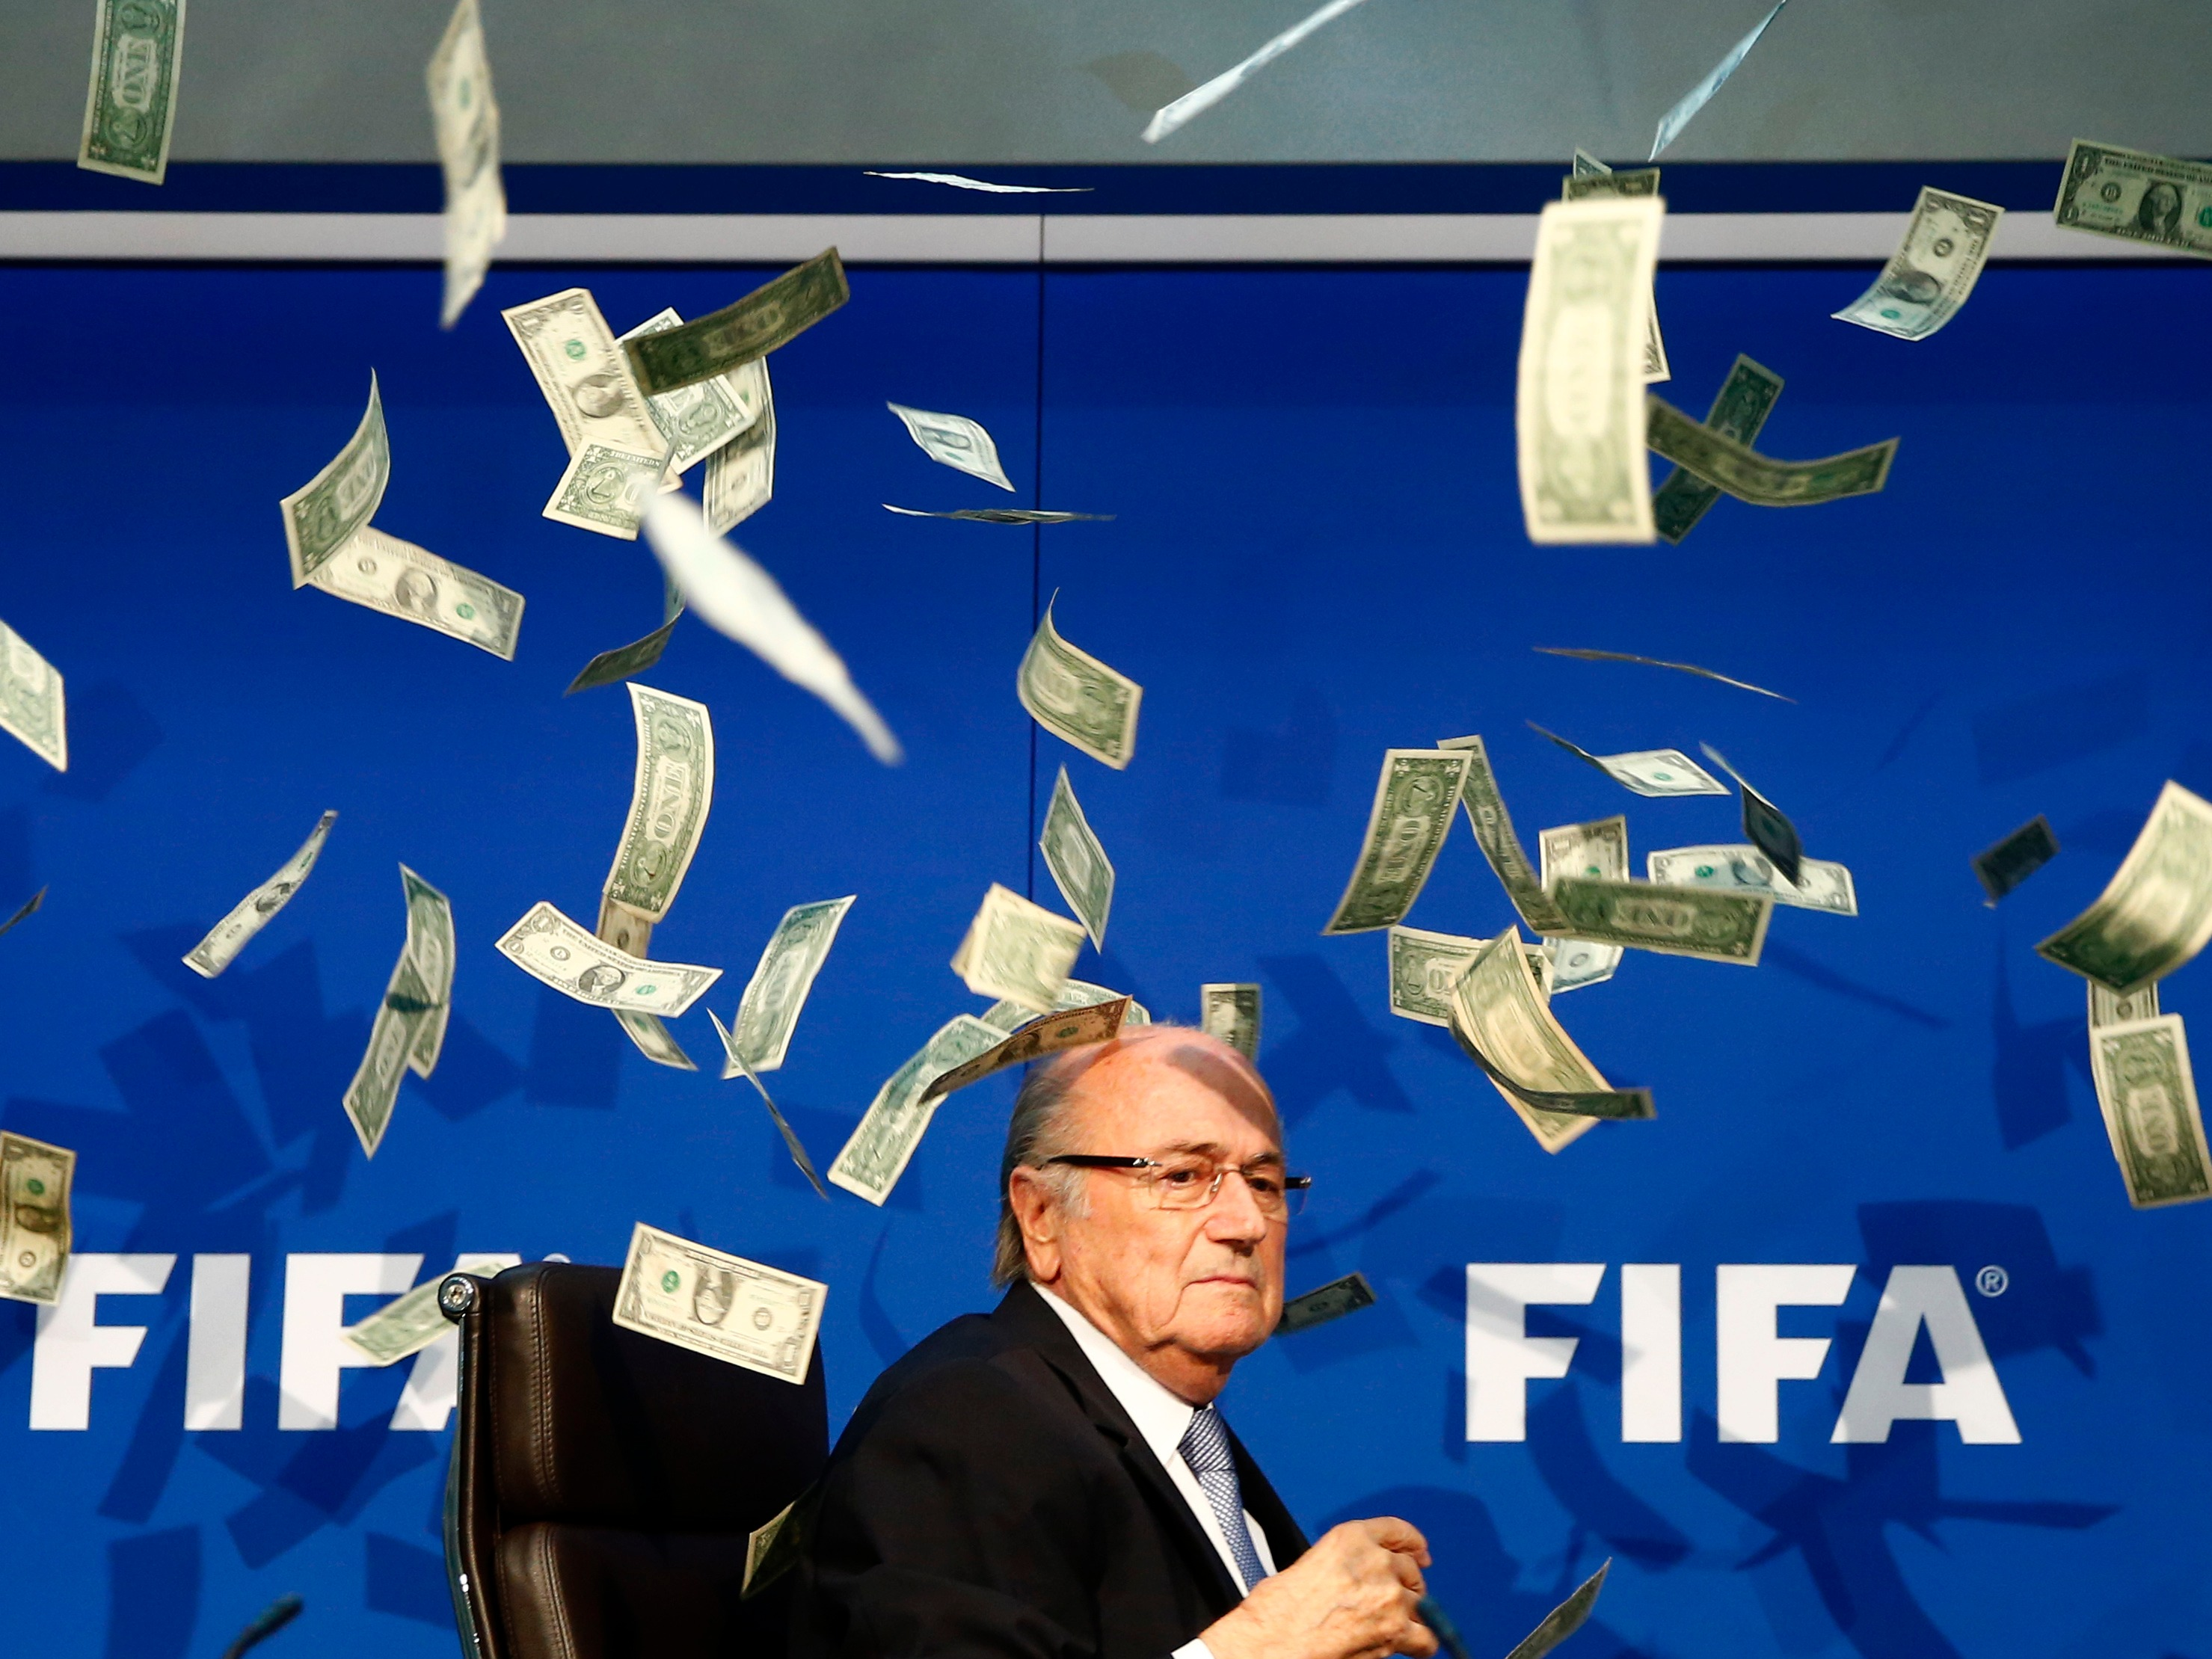 a-protester-threw-a-stack-of-fake-money-at-fifa-president-sepp-blatter-during-a-press-conference